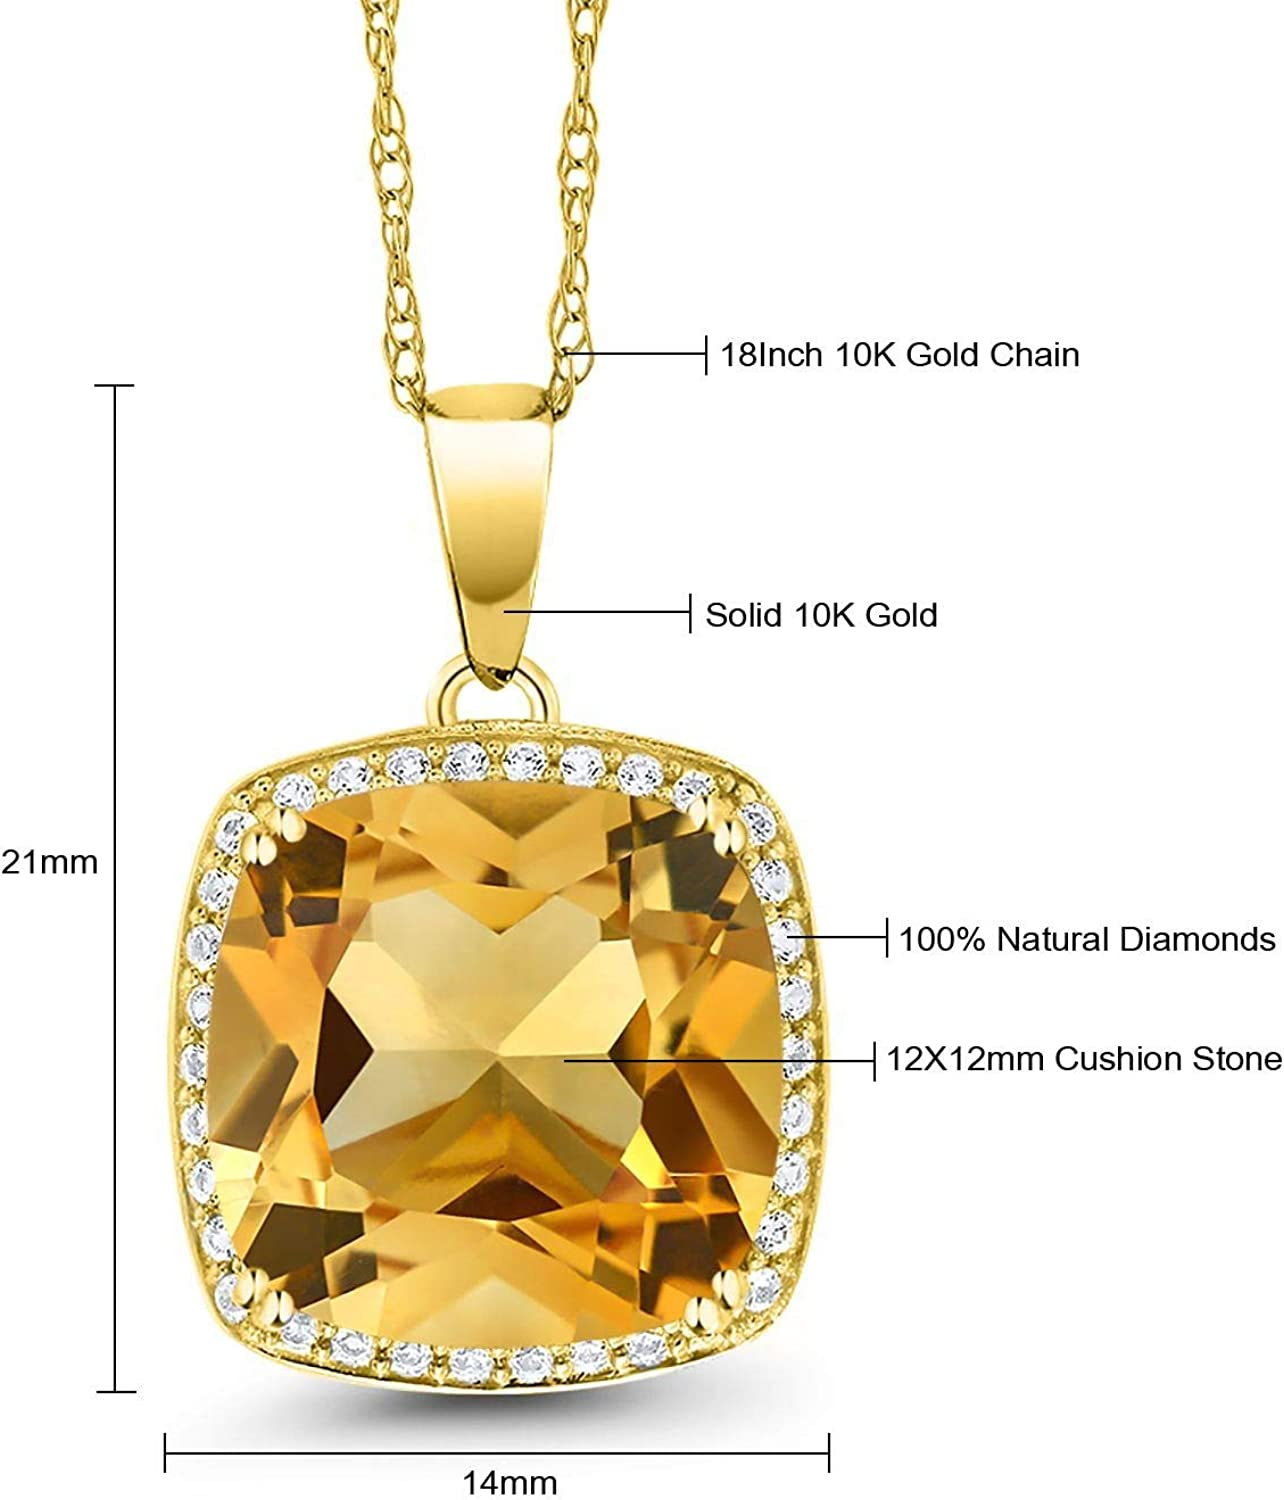 Jewels By Lux 10kt Gold Unisex 6 Six Ht:22.9mm x W:7.7mm Number Charm Pendant.